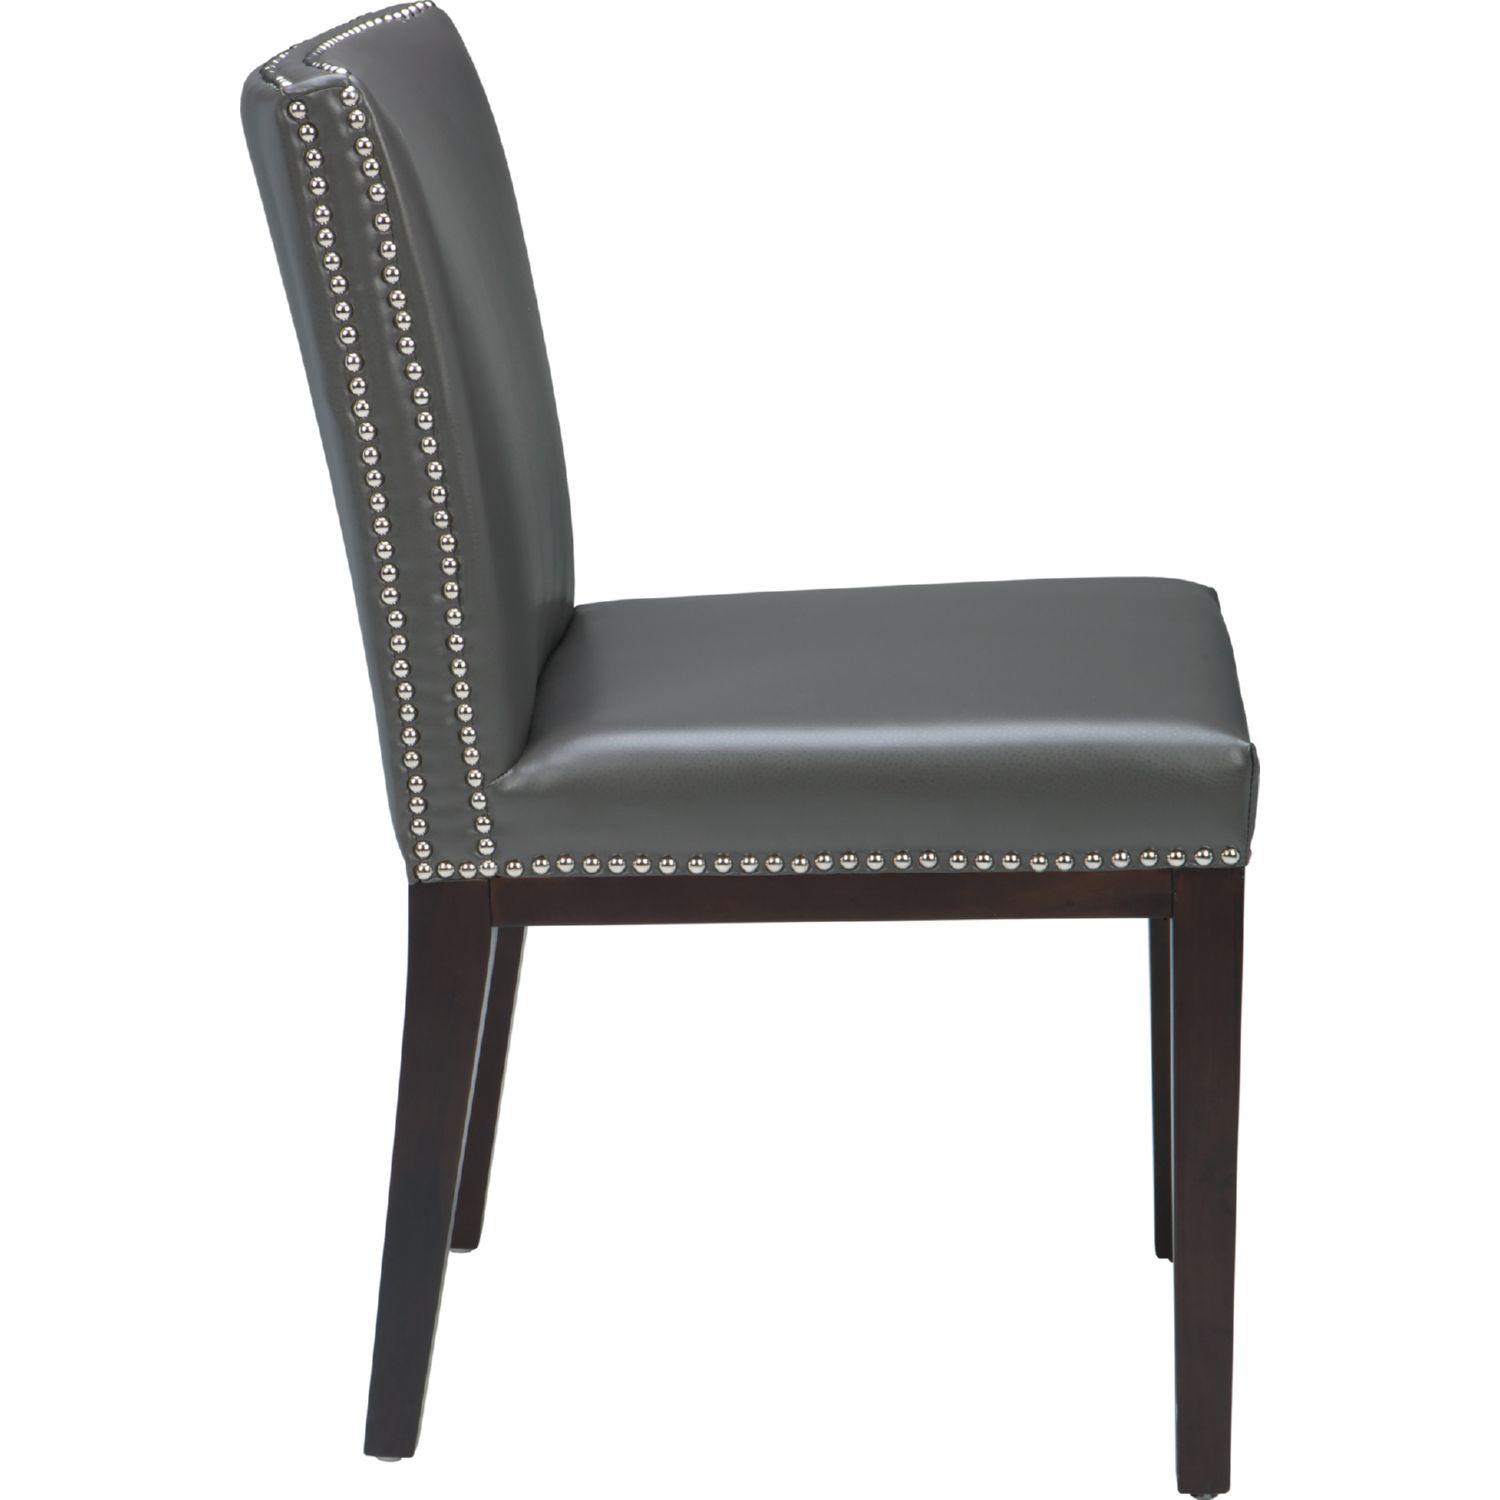 gray leather dining chairs family dollar sunpan 55878 vintage chair in grey set of 2